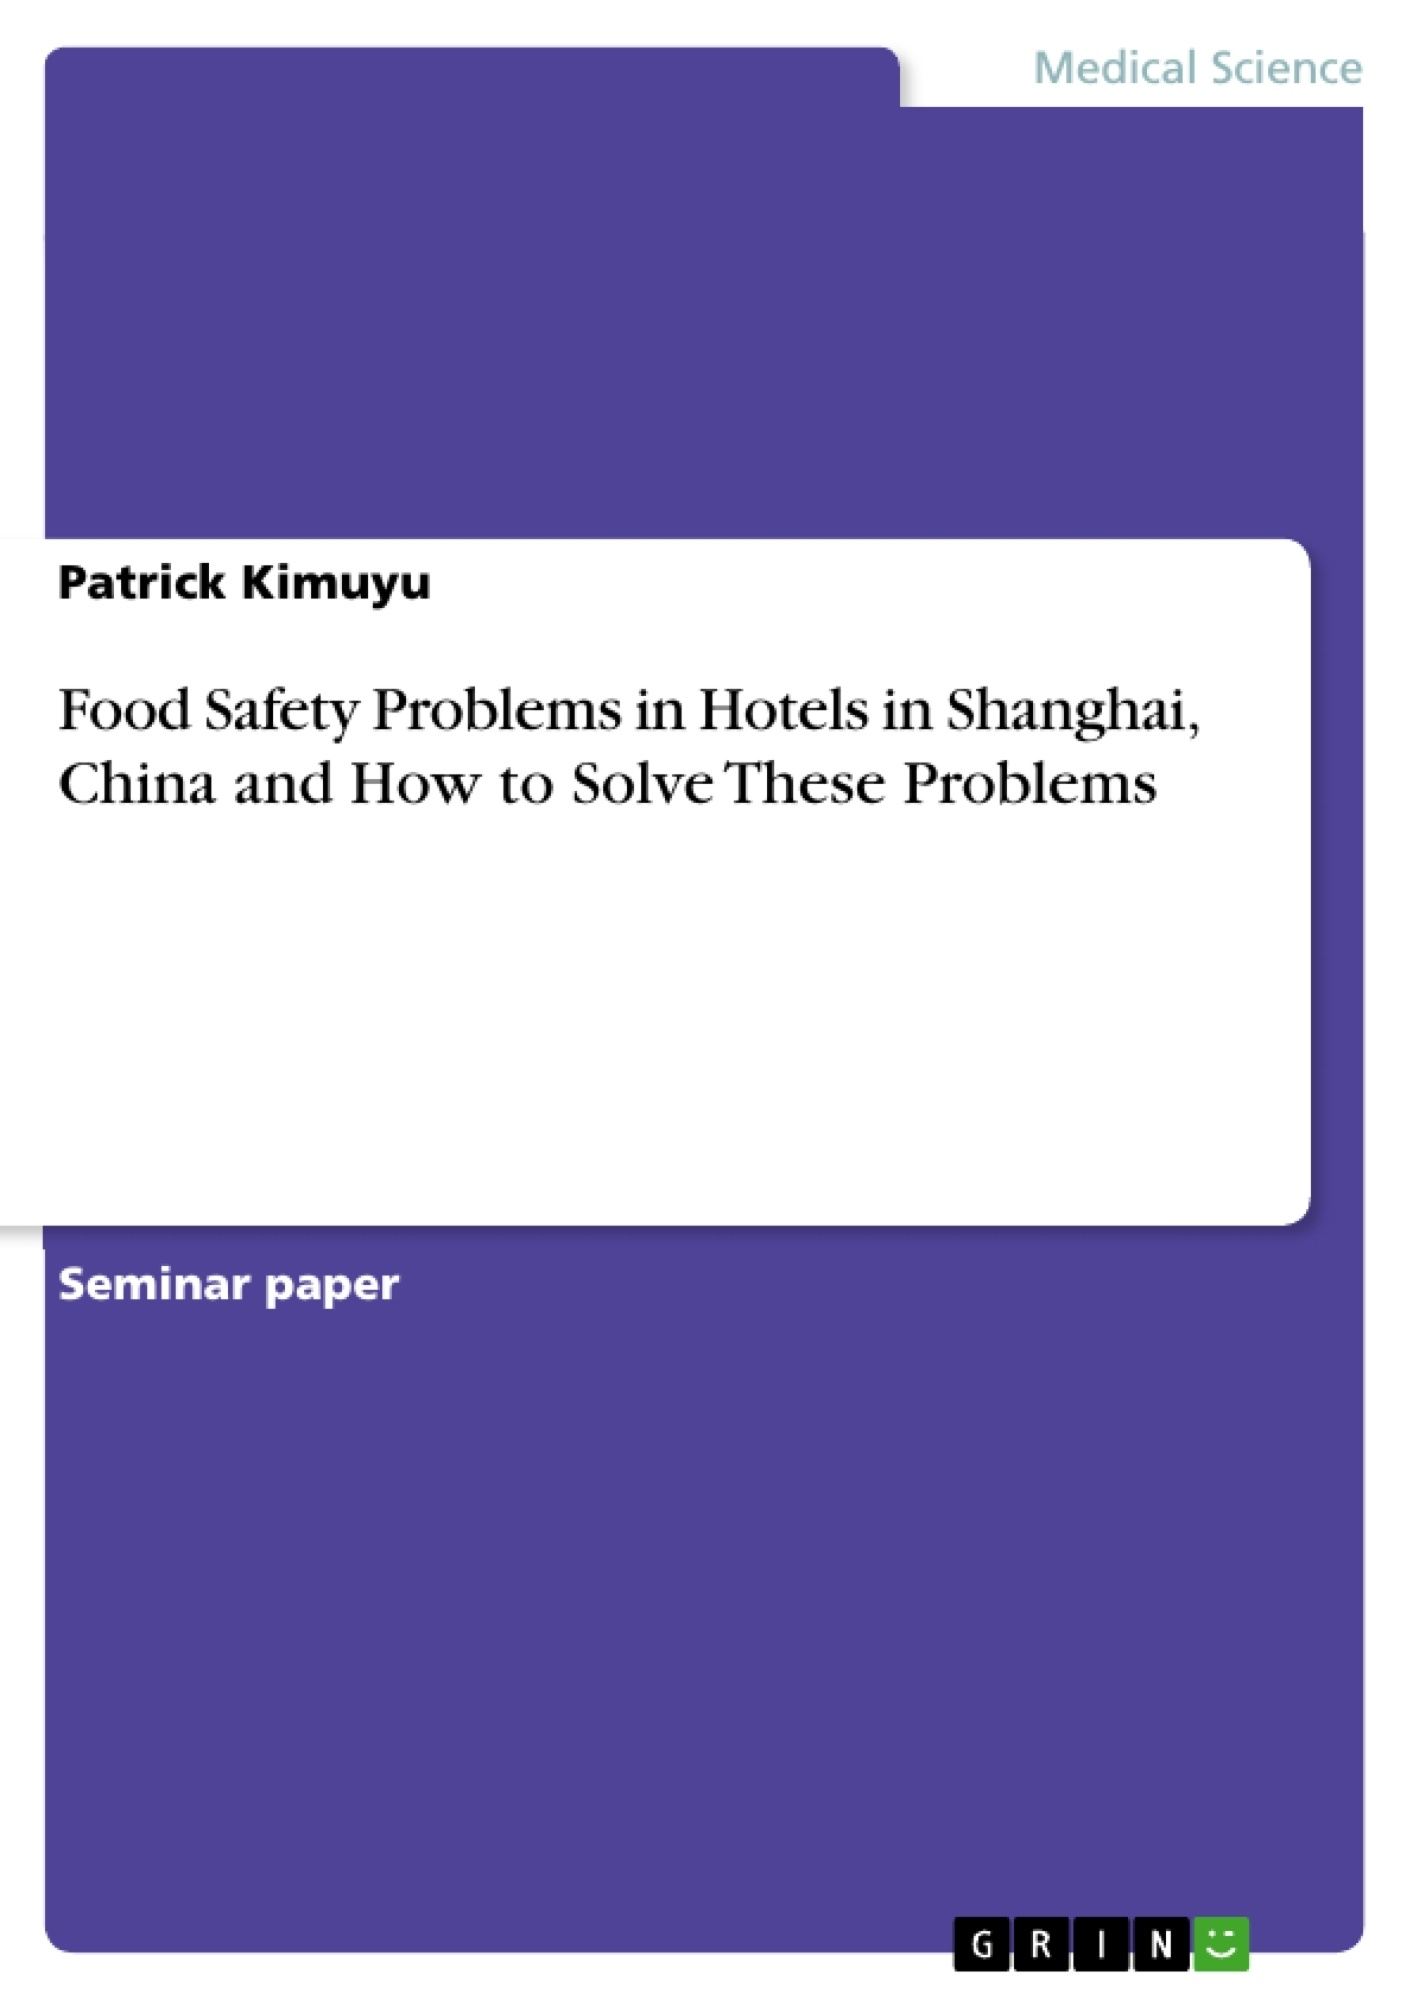 Title: Food Safety Problems in Hotels in Shanghai, China and How to Solve These Problems